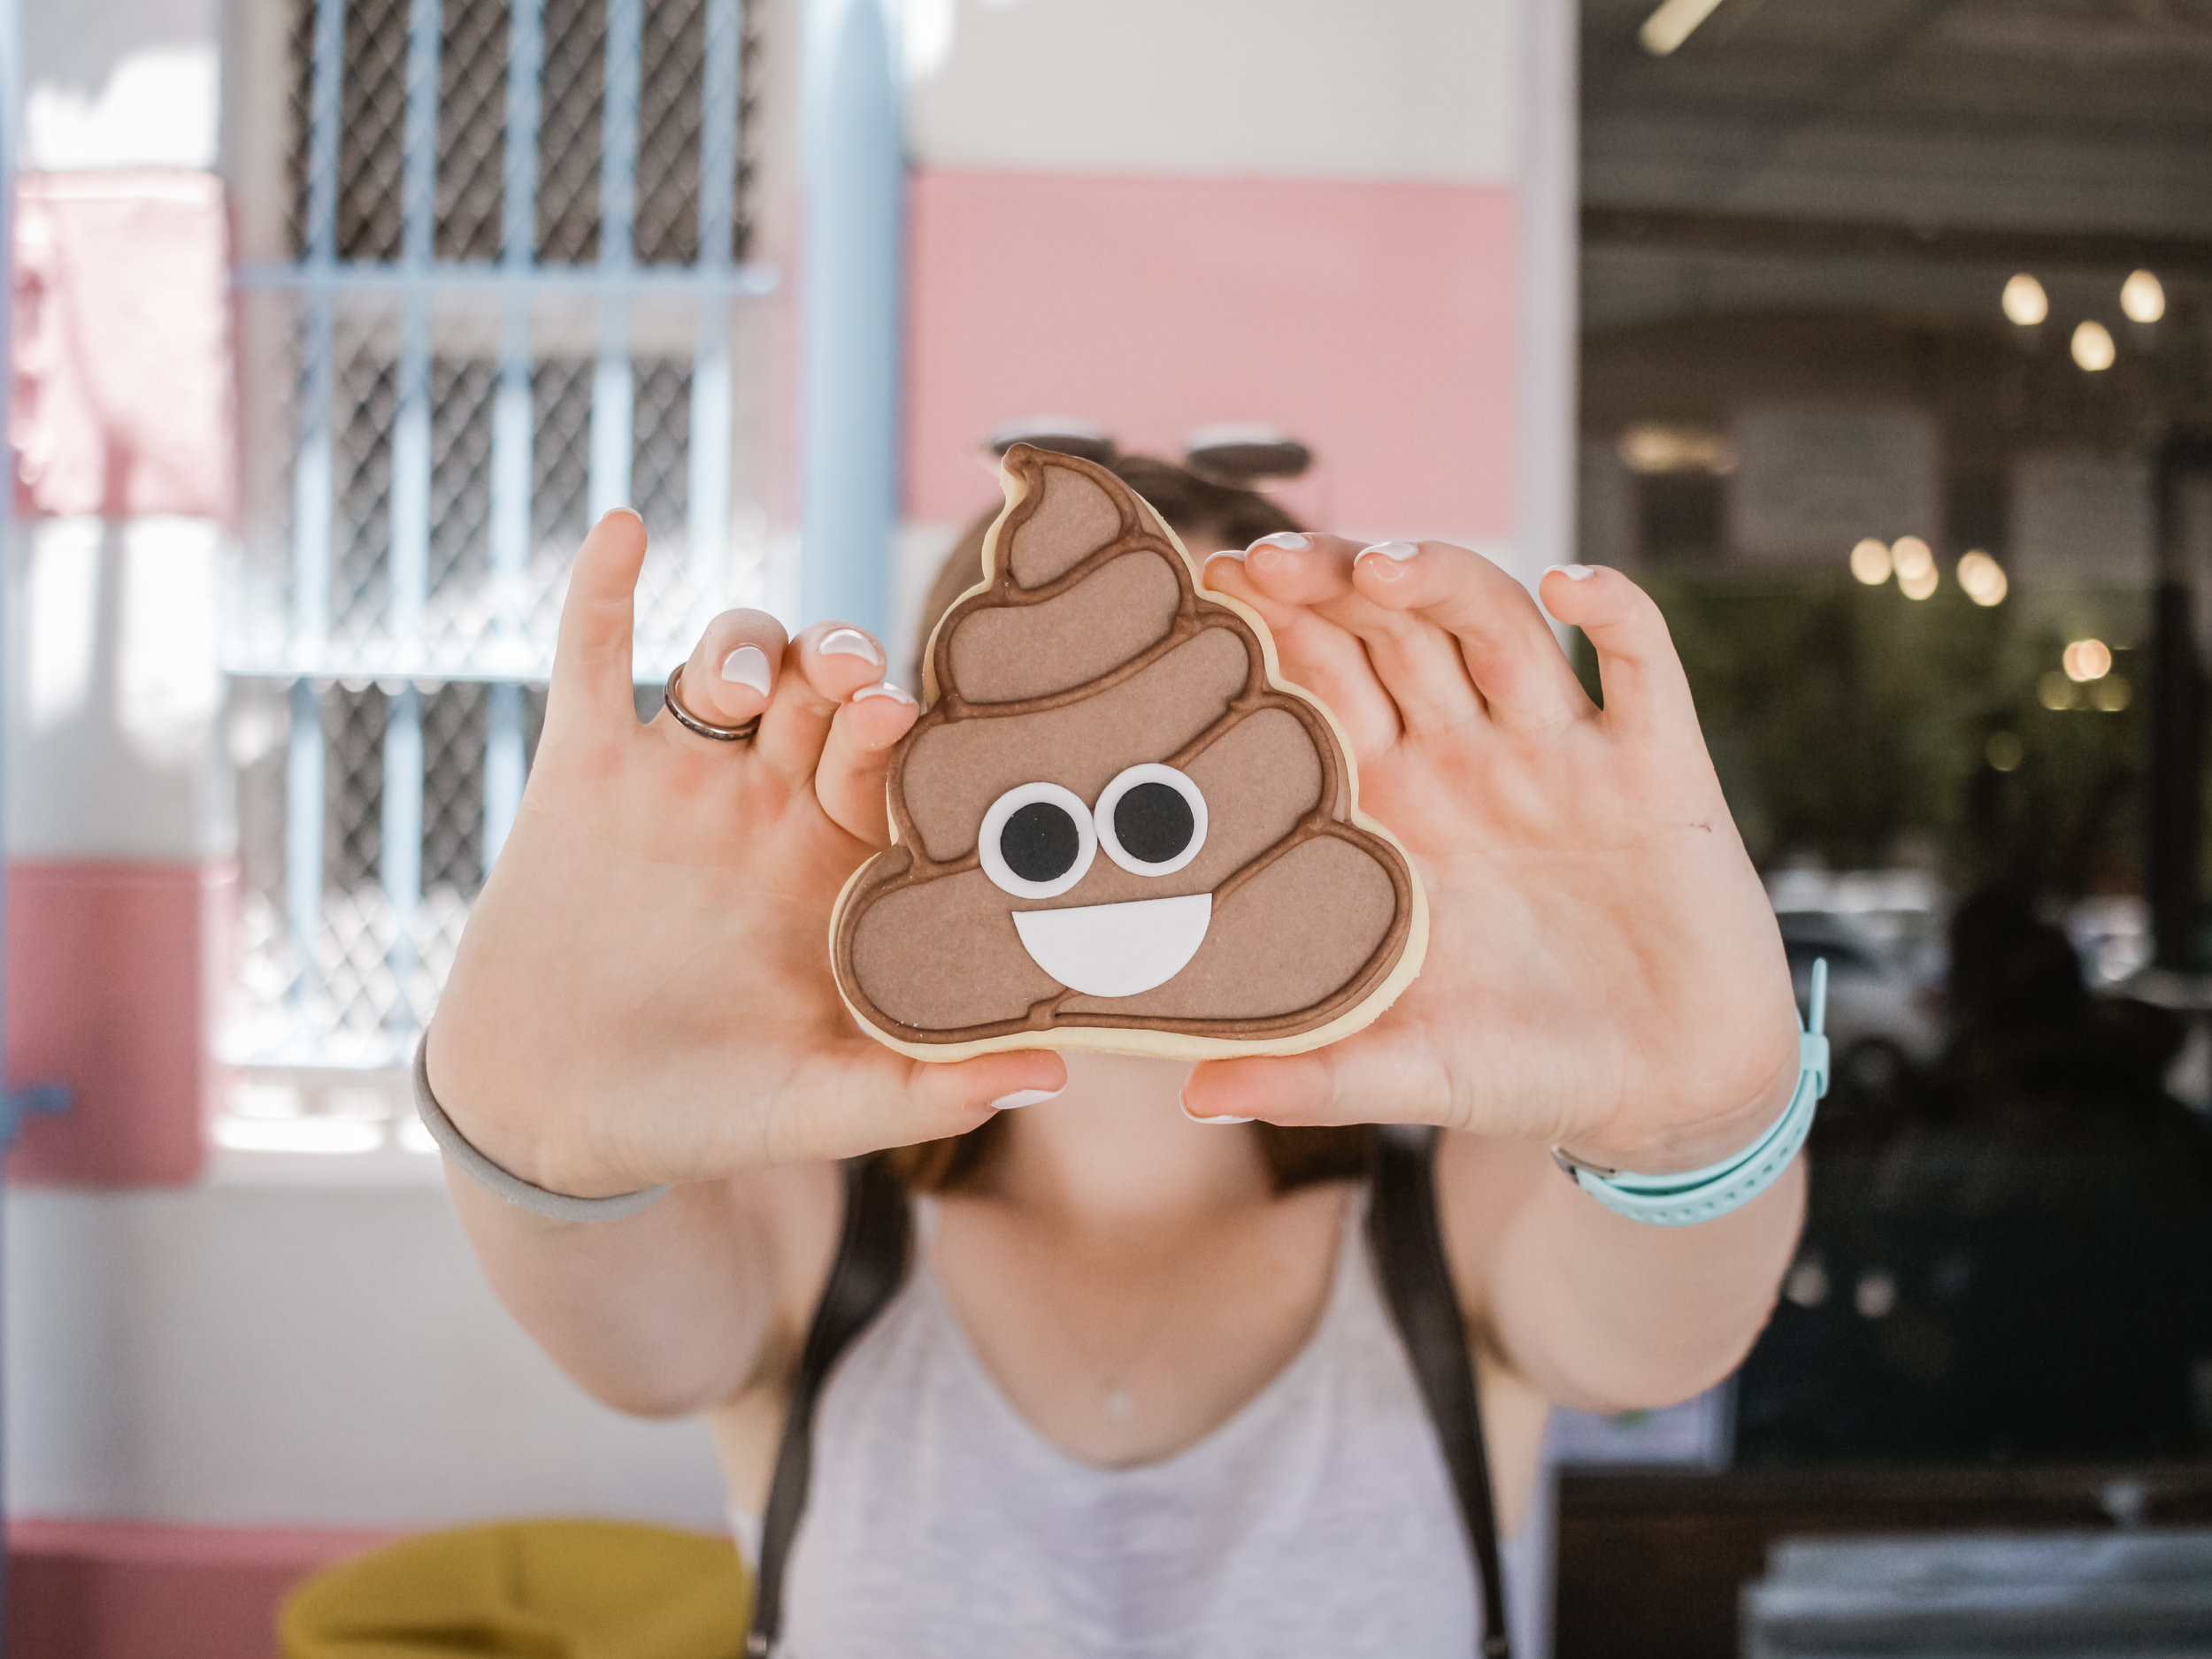 Someone holding a cookie in the shape of the poop emoji